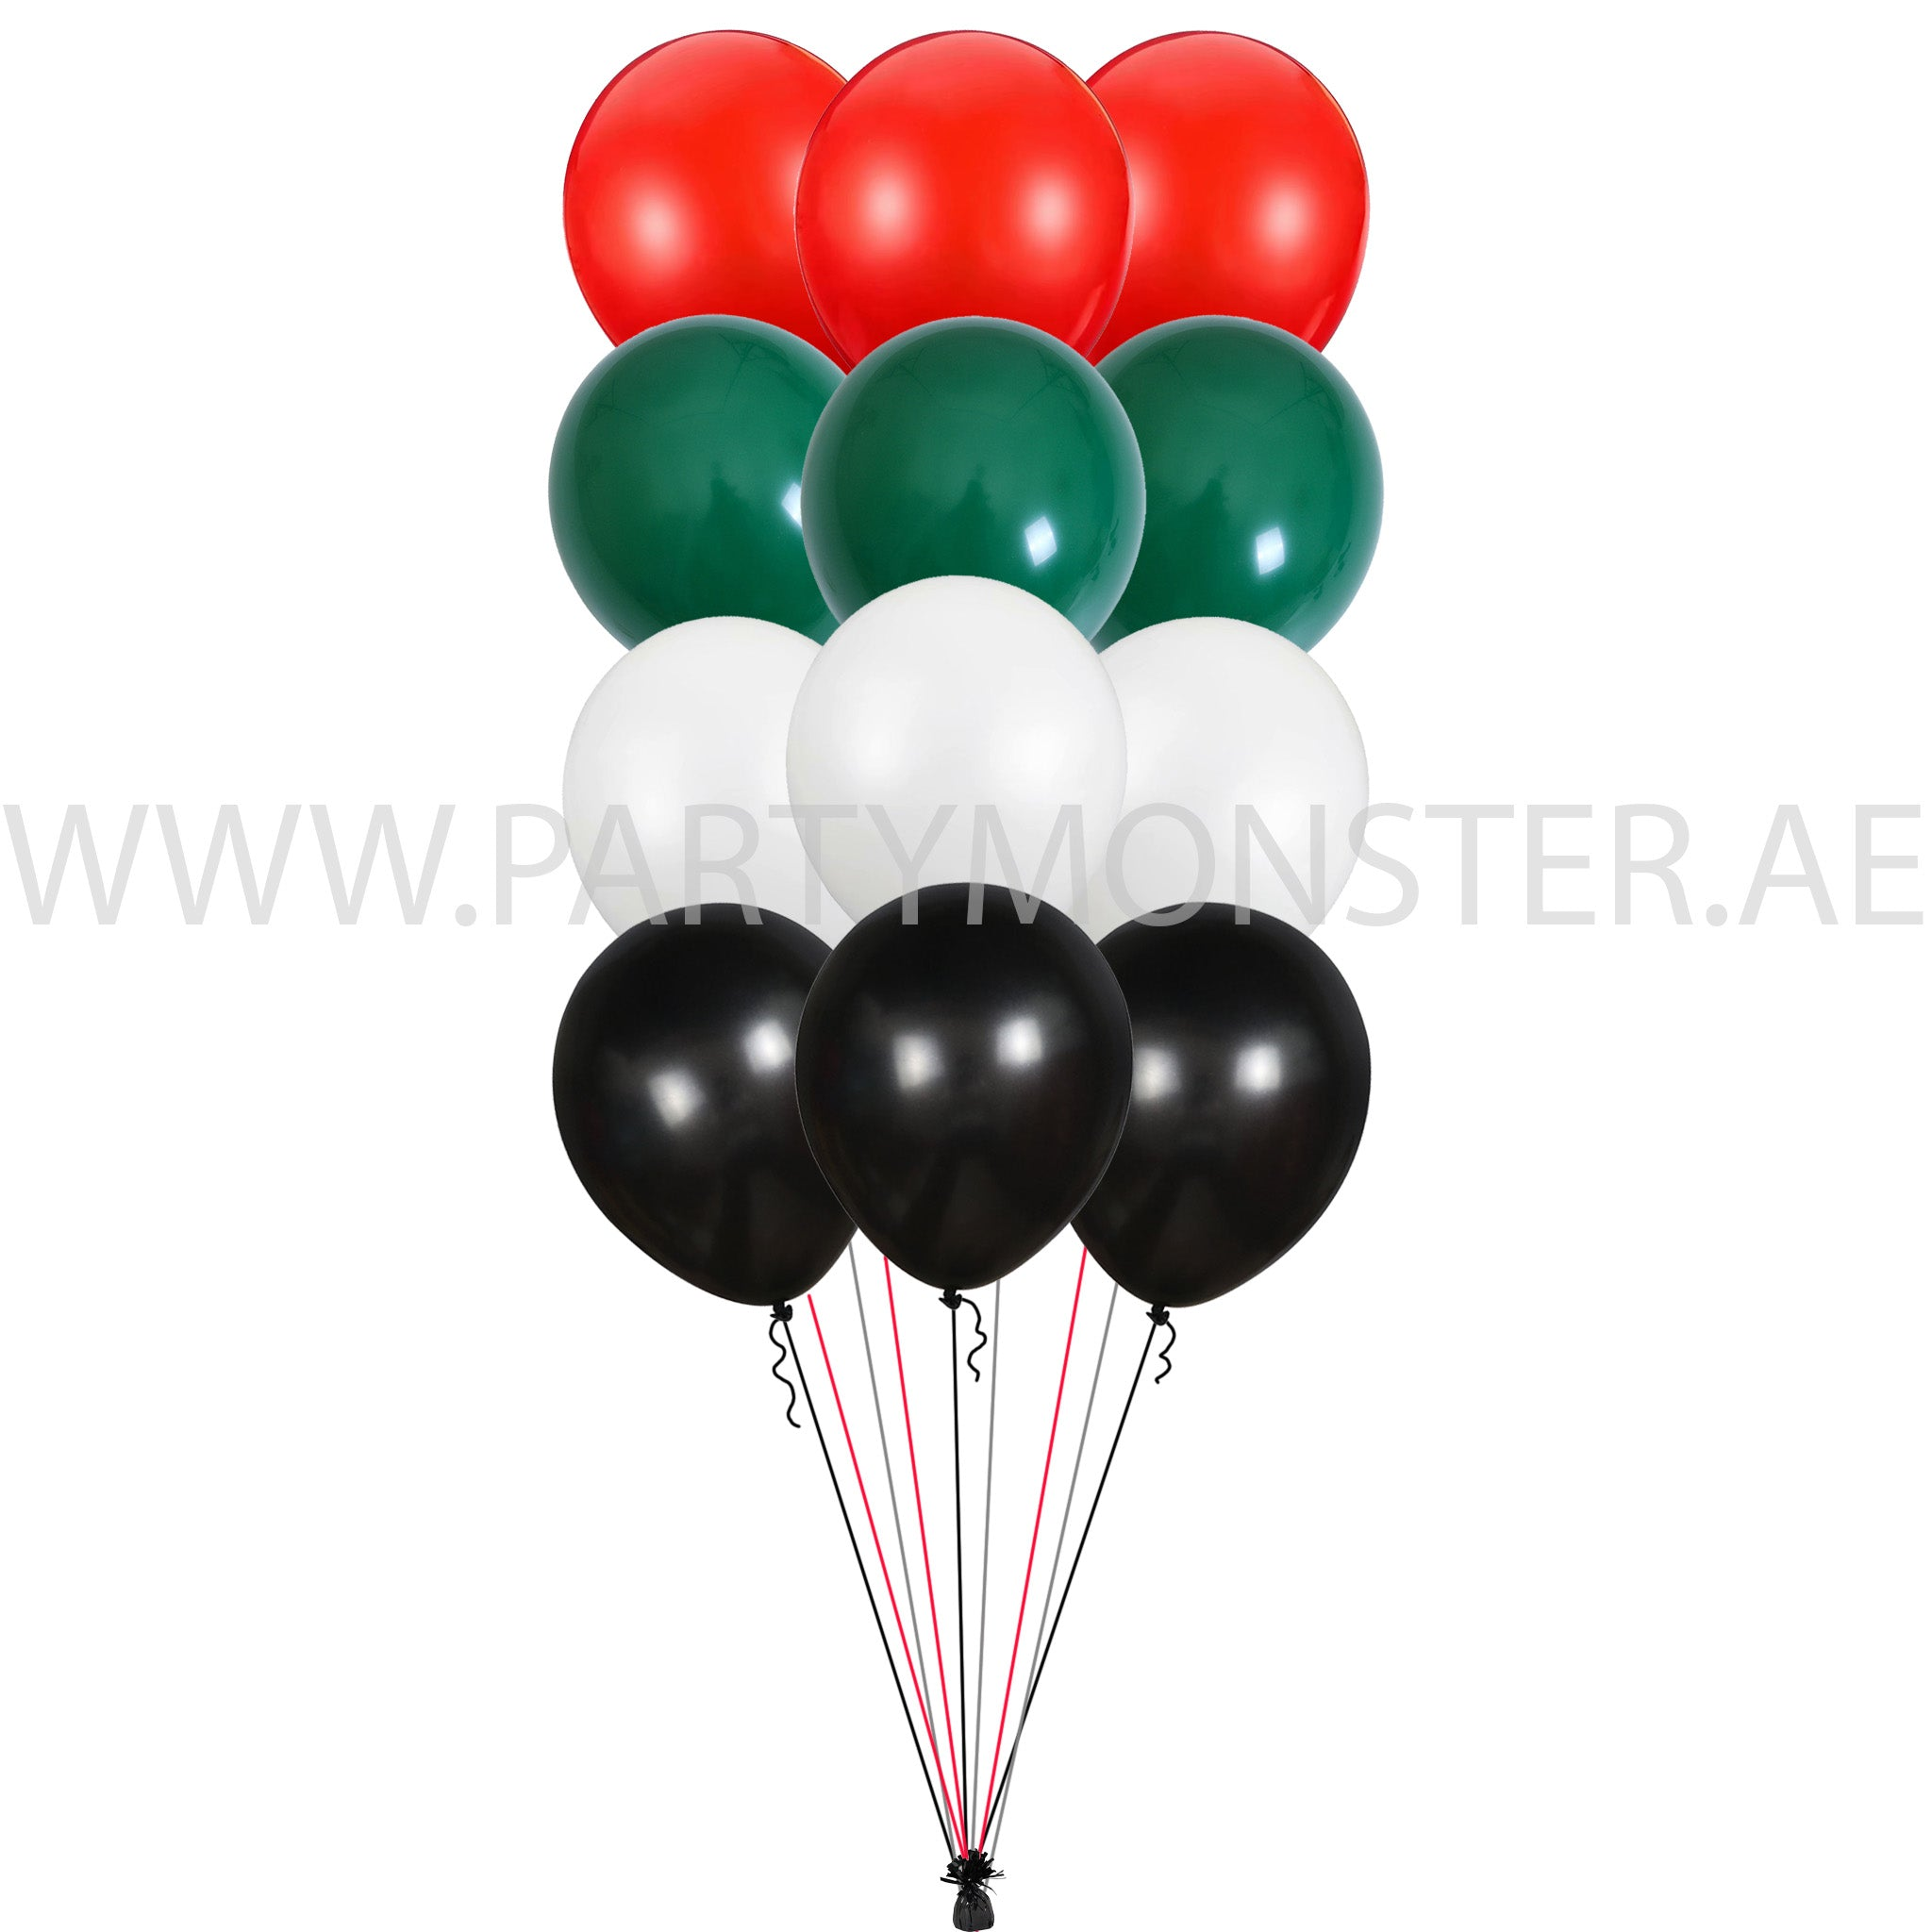 uae national day latex balloons bouquet for sale online in Dubai